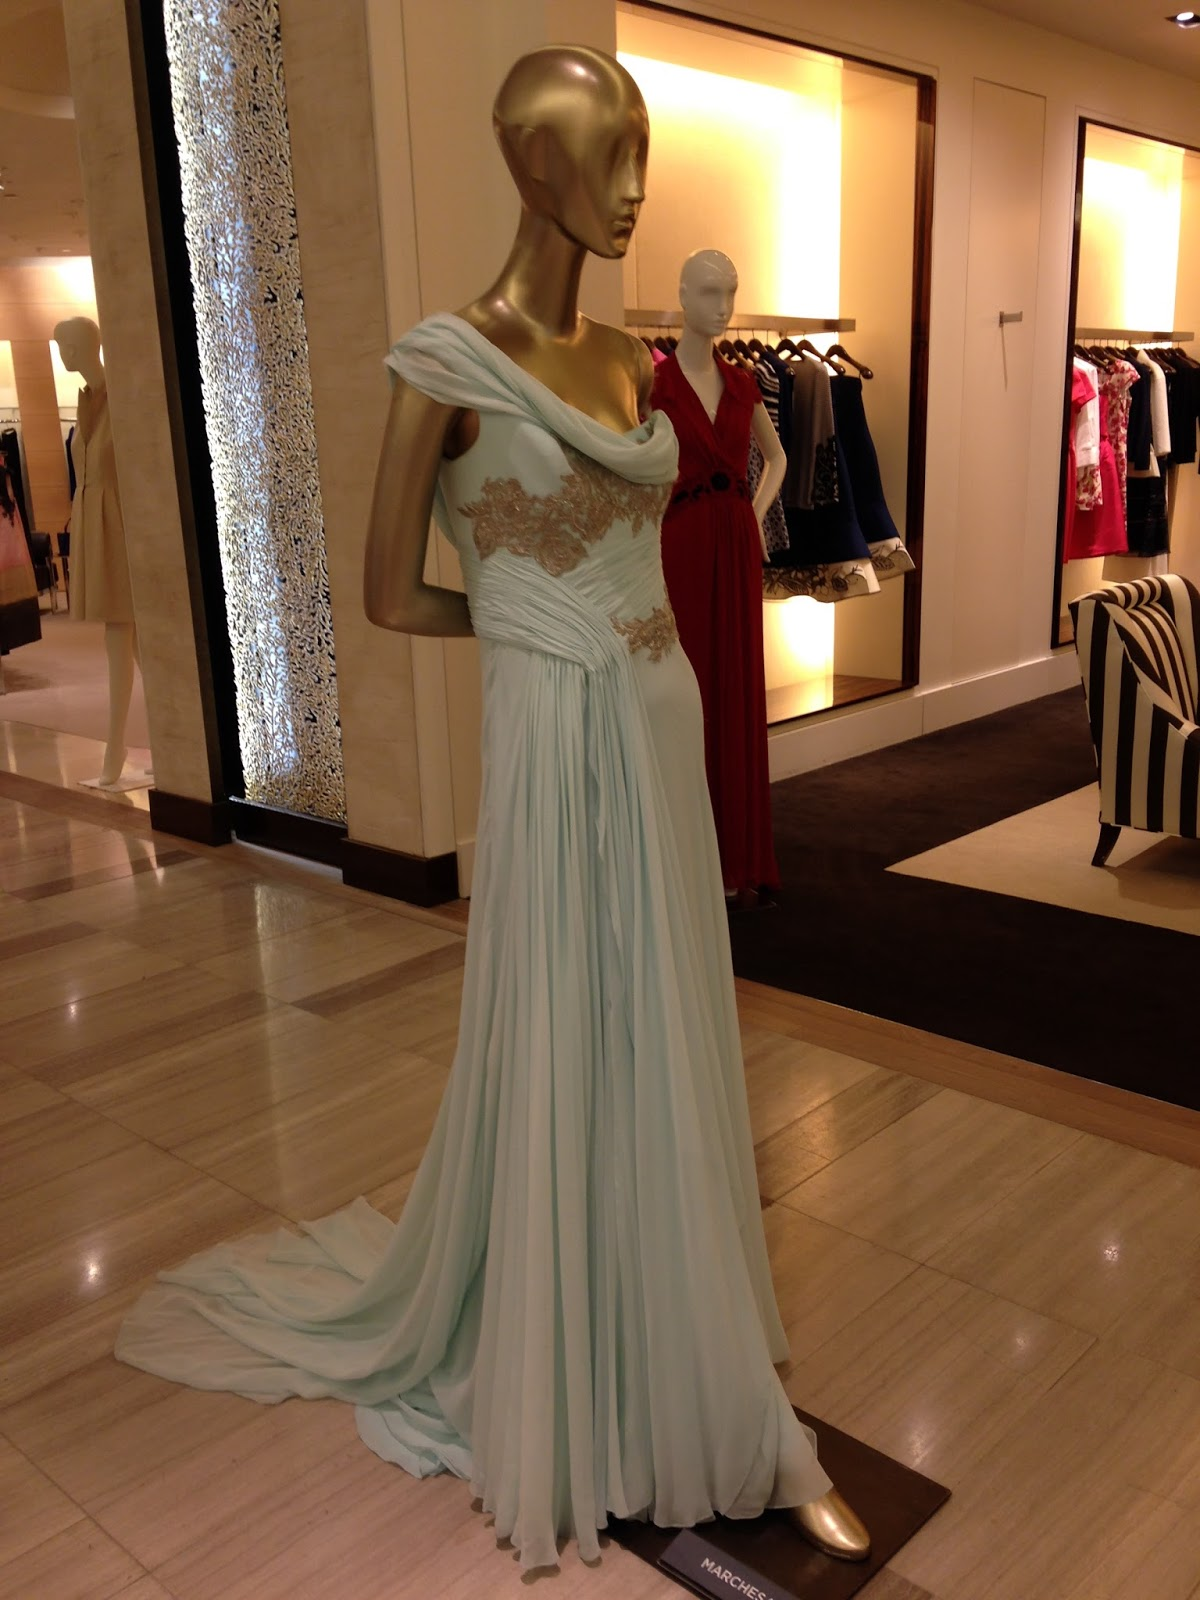 Saks Fifth Avenue Evening Gowns – Fashion design images